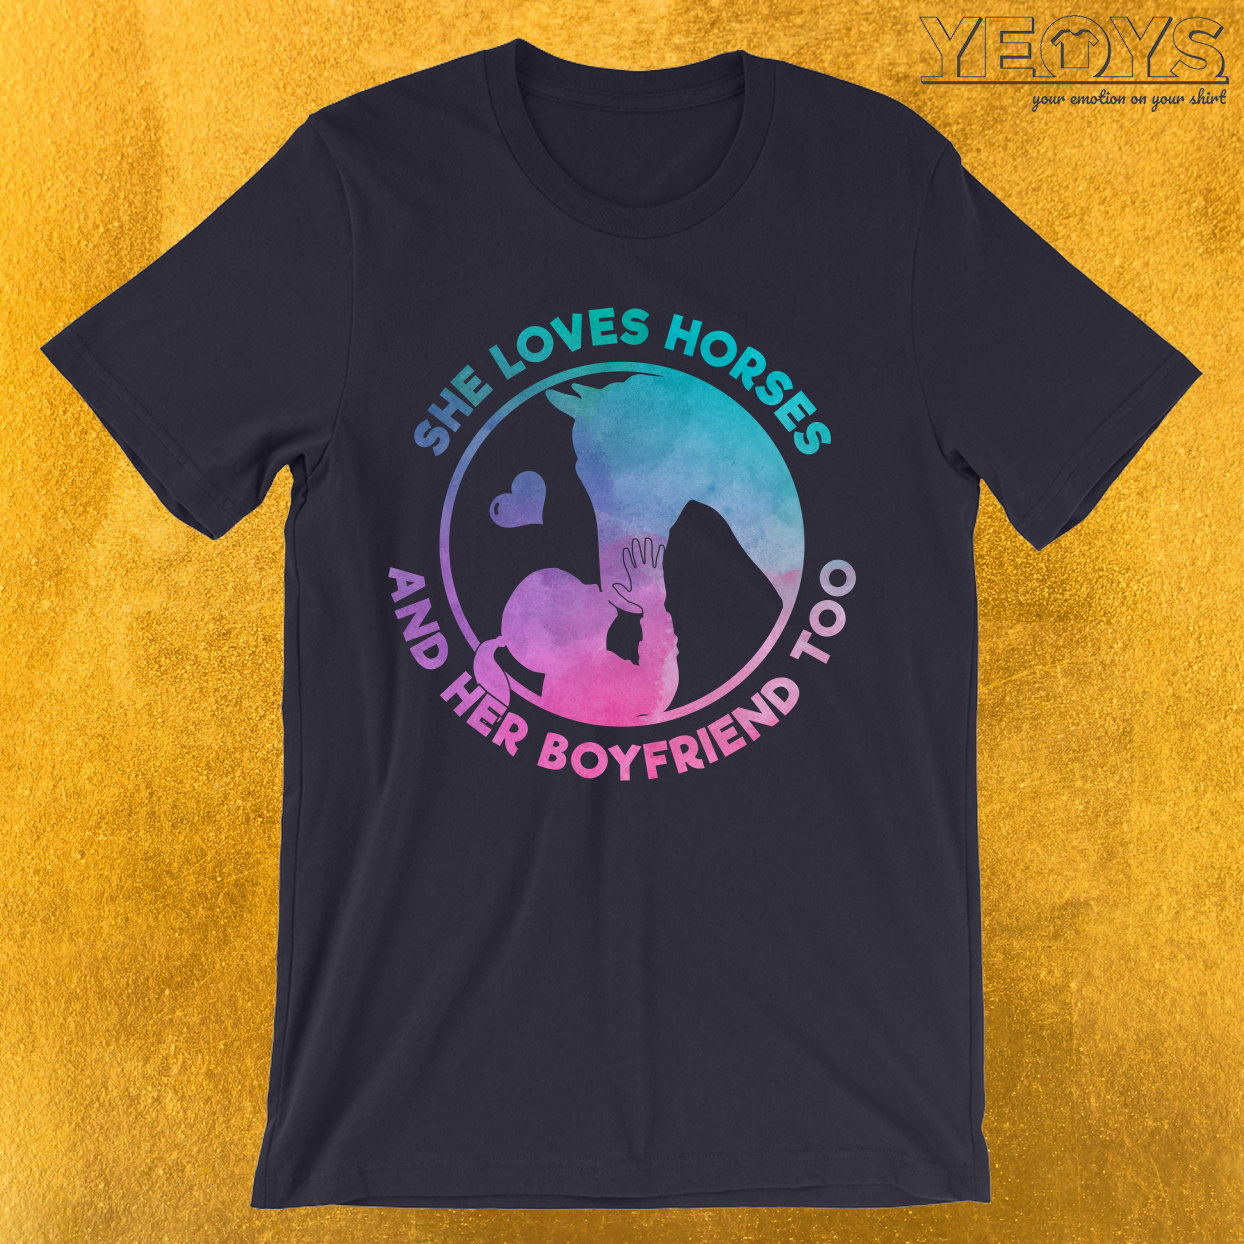 She Loves Horses And Her Boyfriend Too T-Shirt